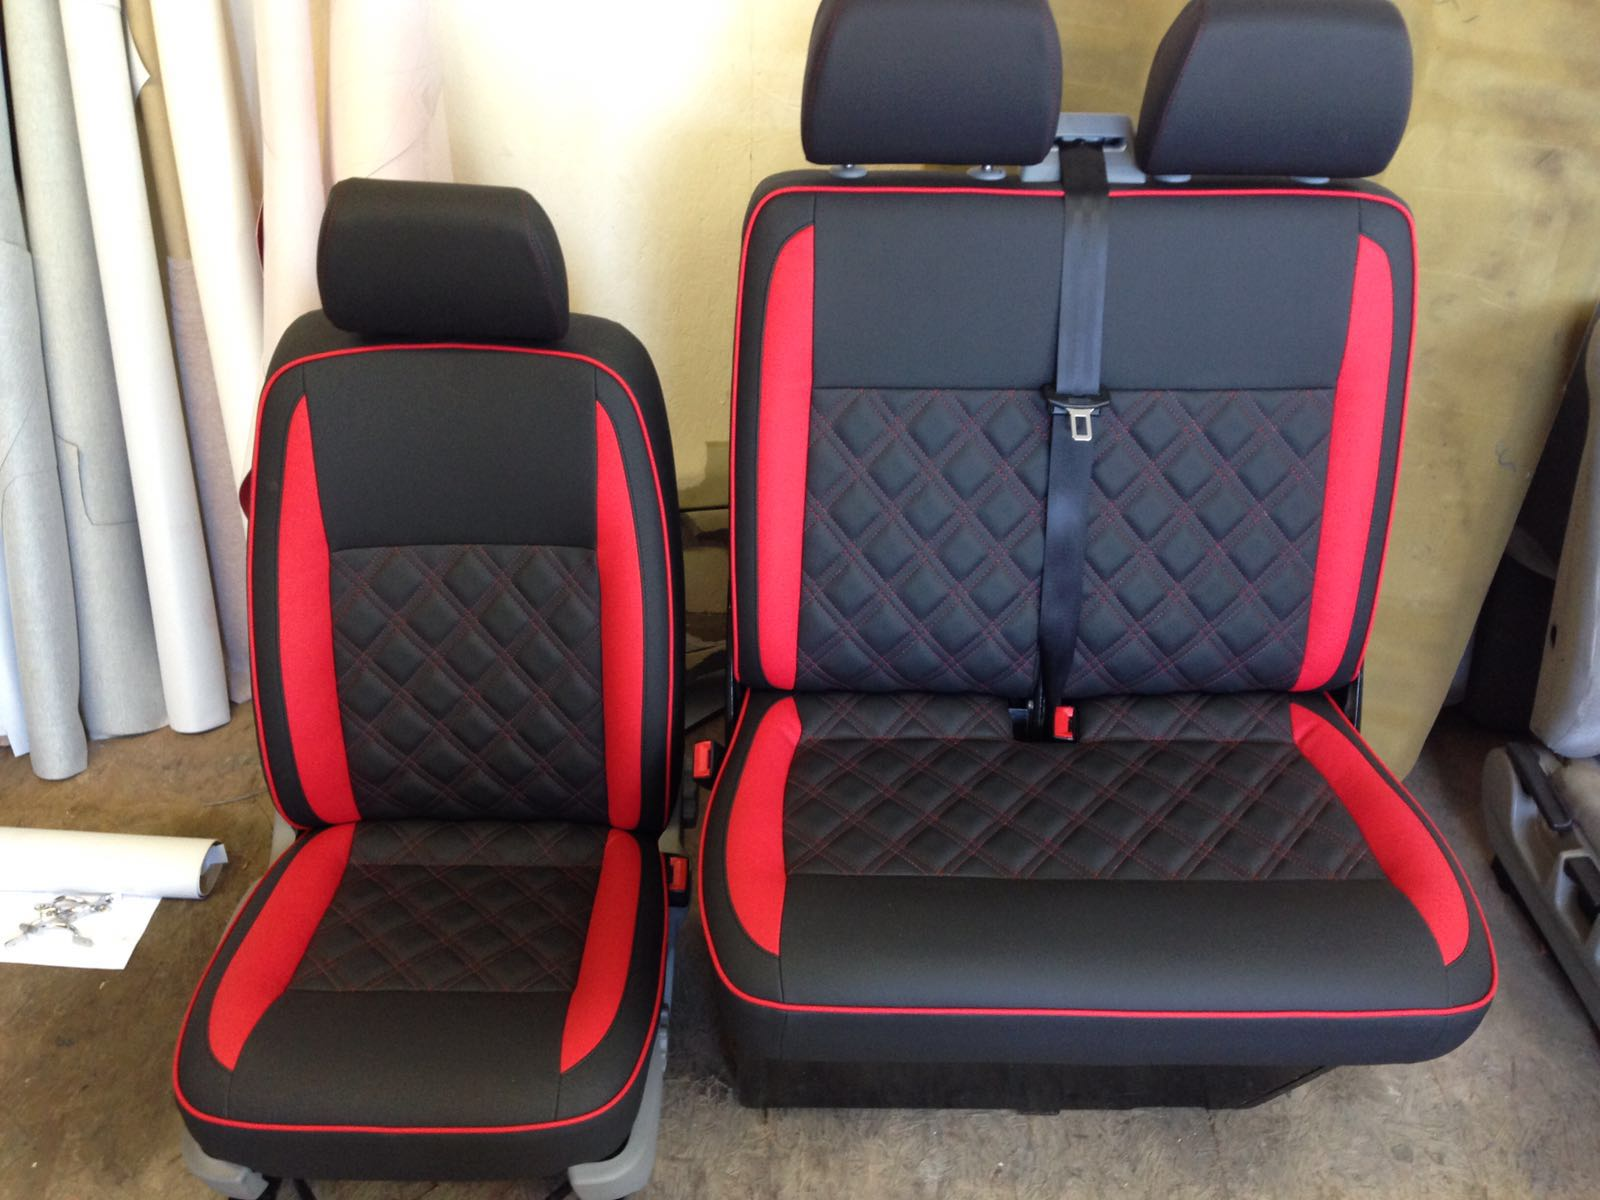 CSG Trimming Southampton - VW Seat retrim with Bentley Stitch